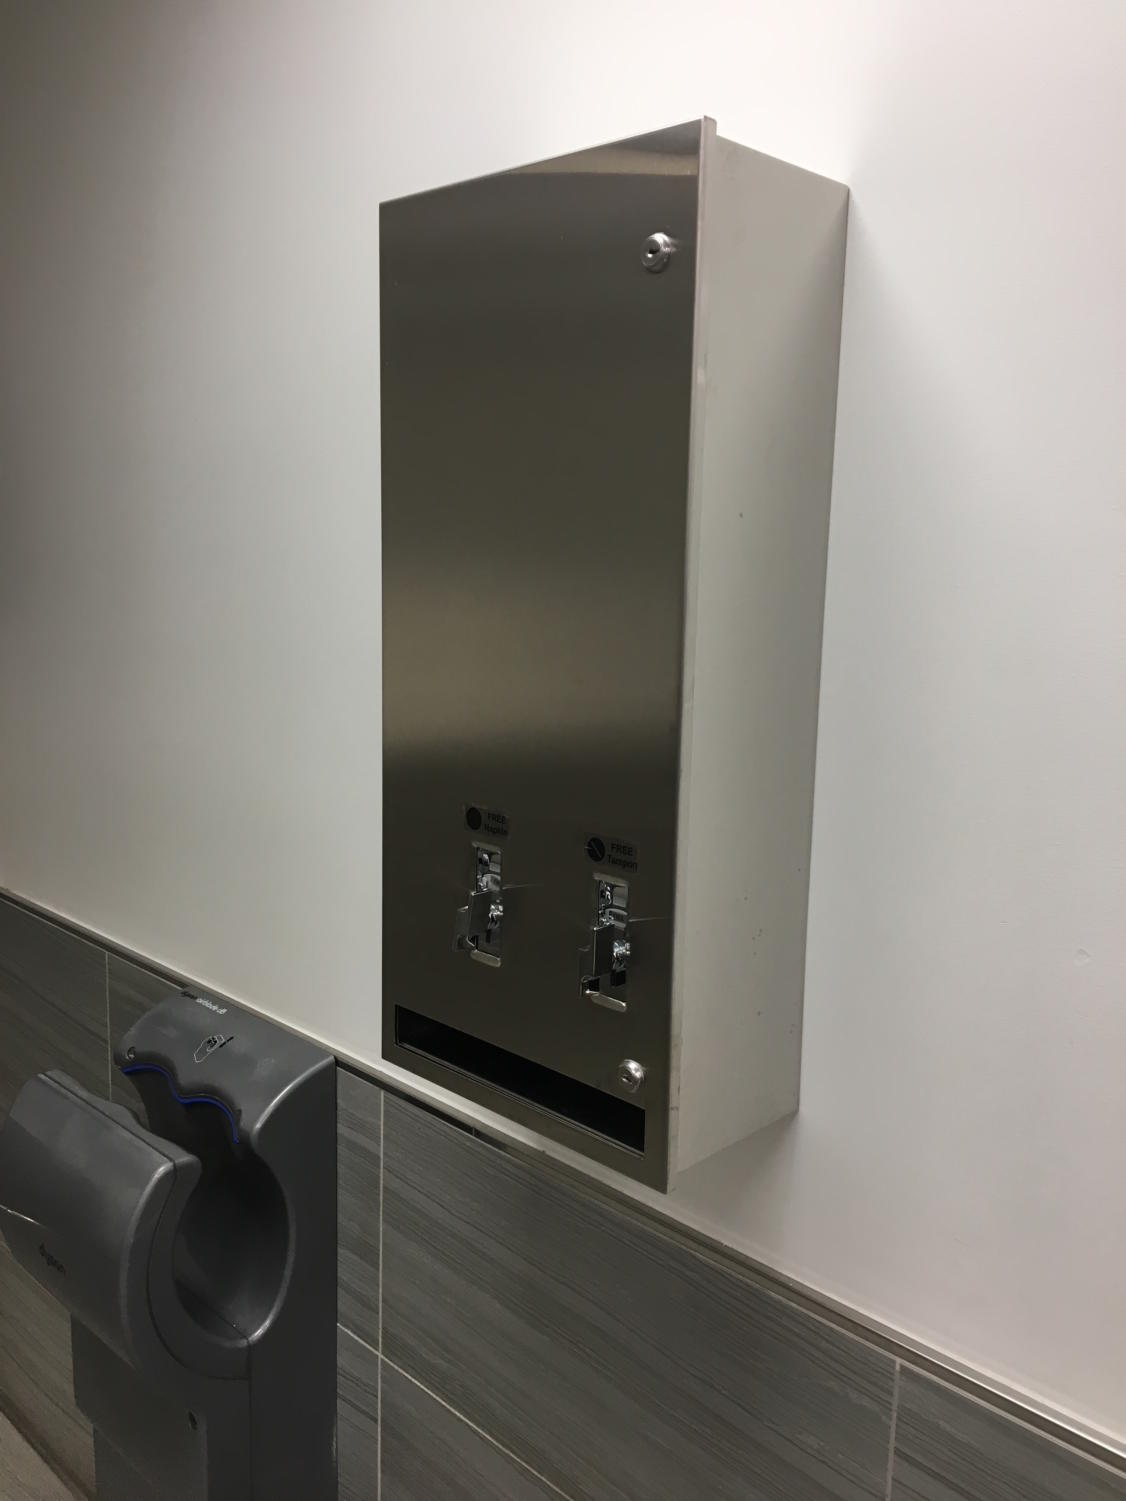 An example of one of Pace's pad and tampon dispensers.